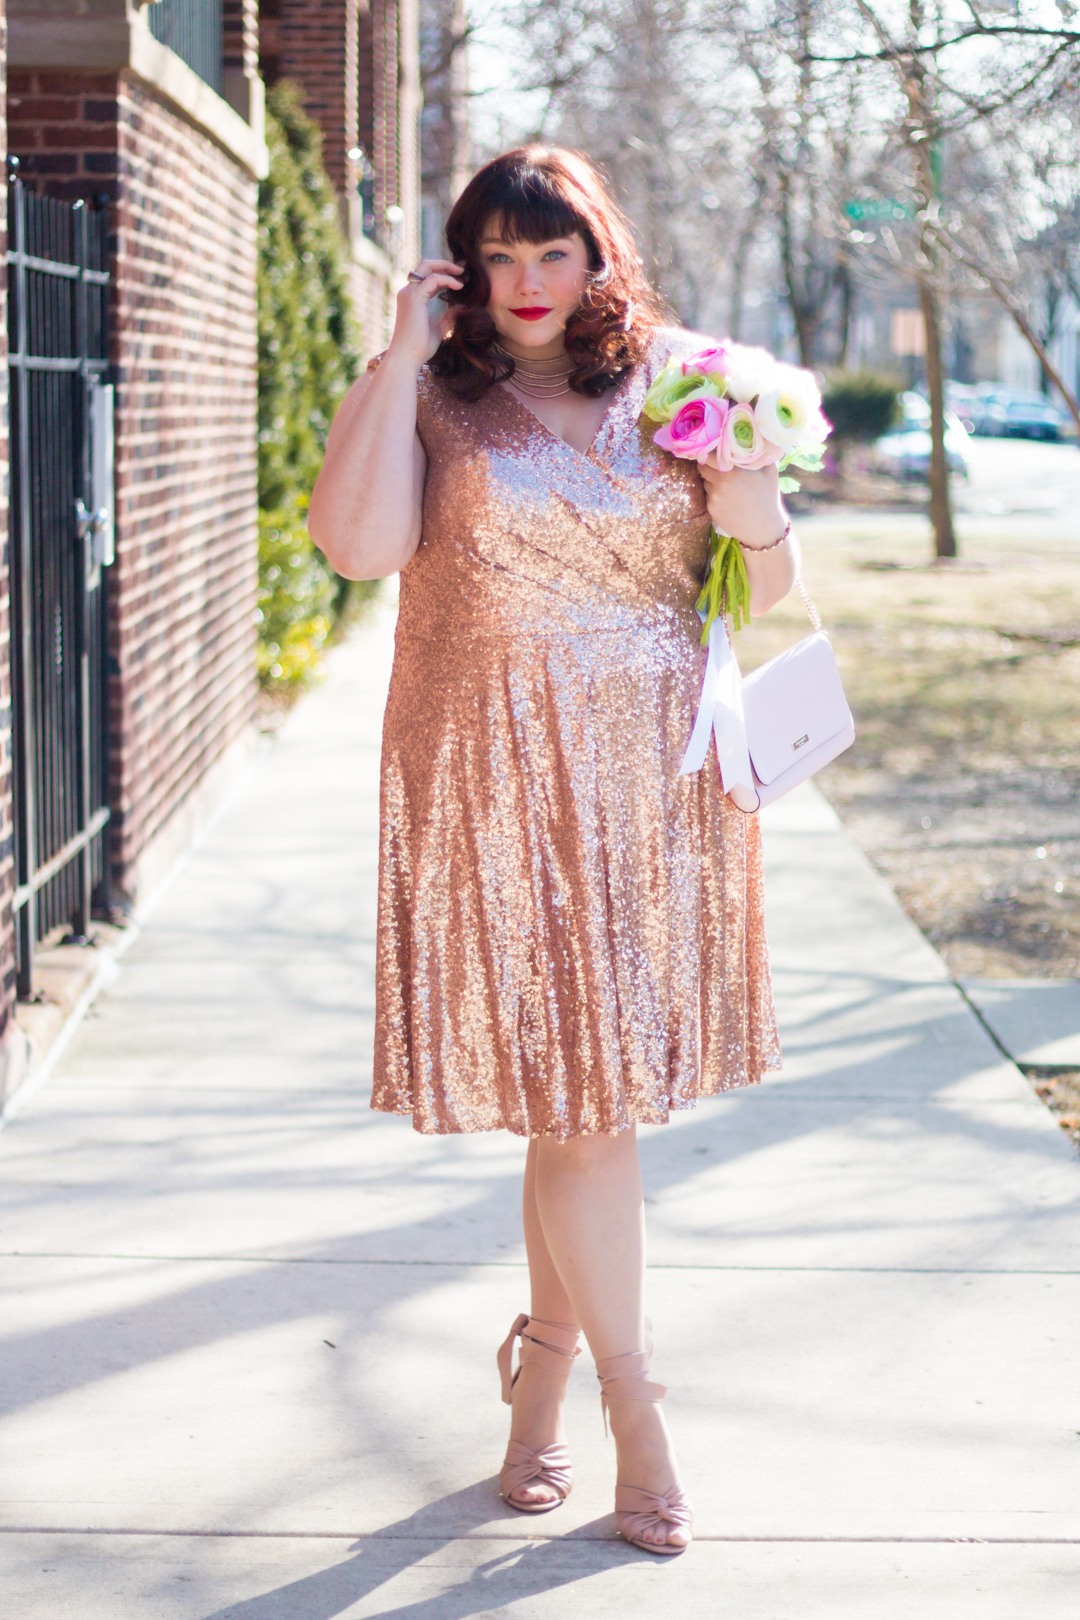 795e079d73f7 Plus Size Valentine's Style: Pink Sequin Cocktail Dress from Sydney's Closet